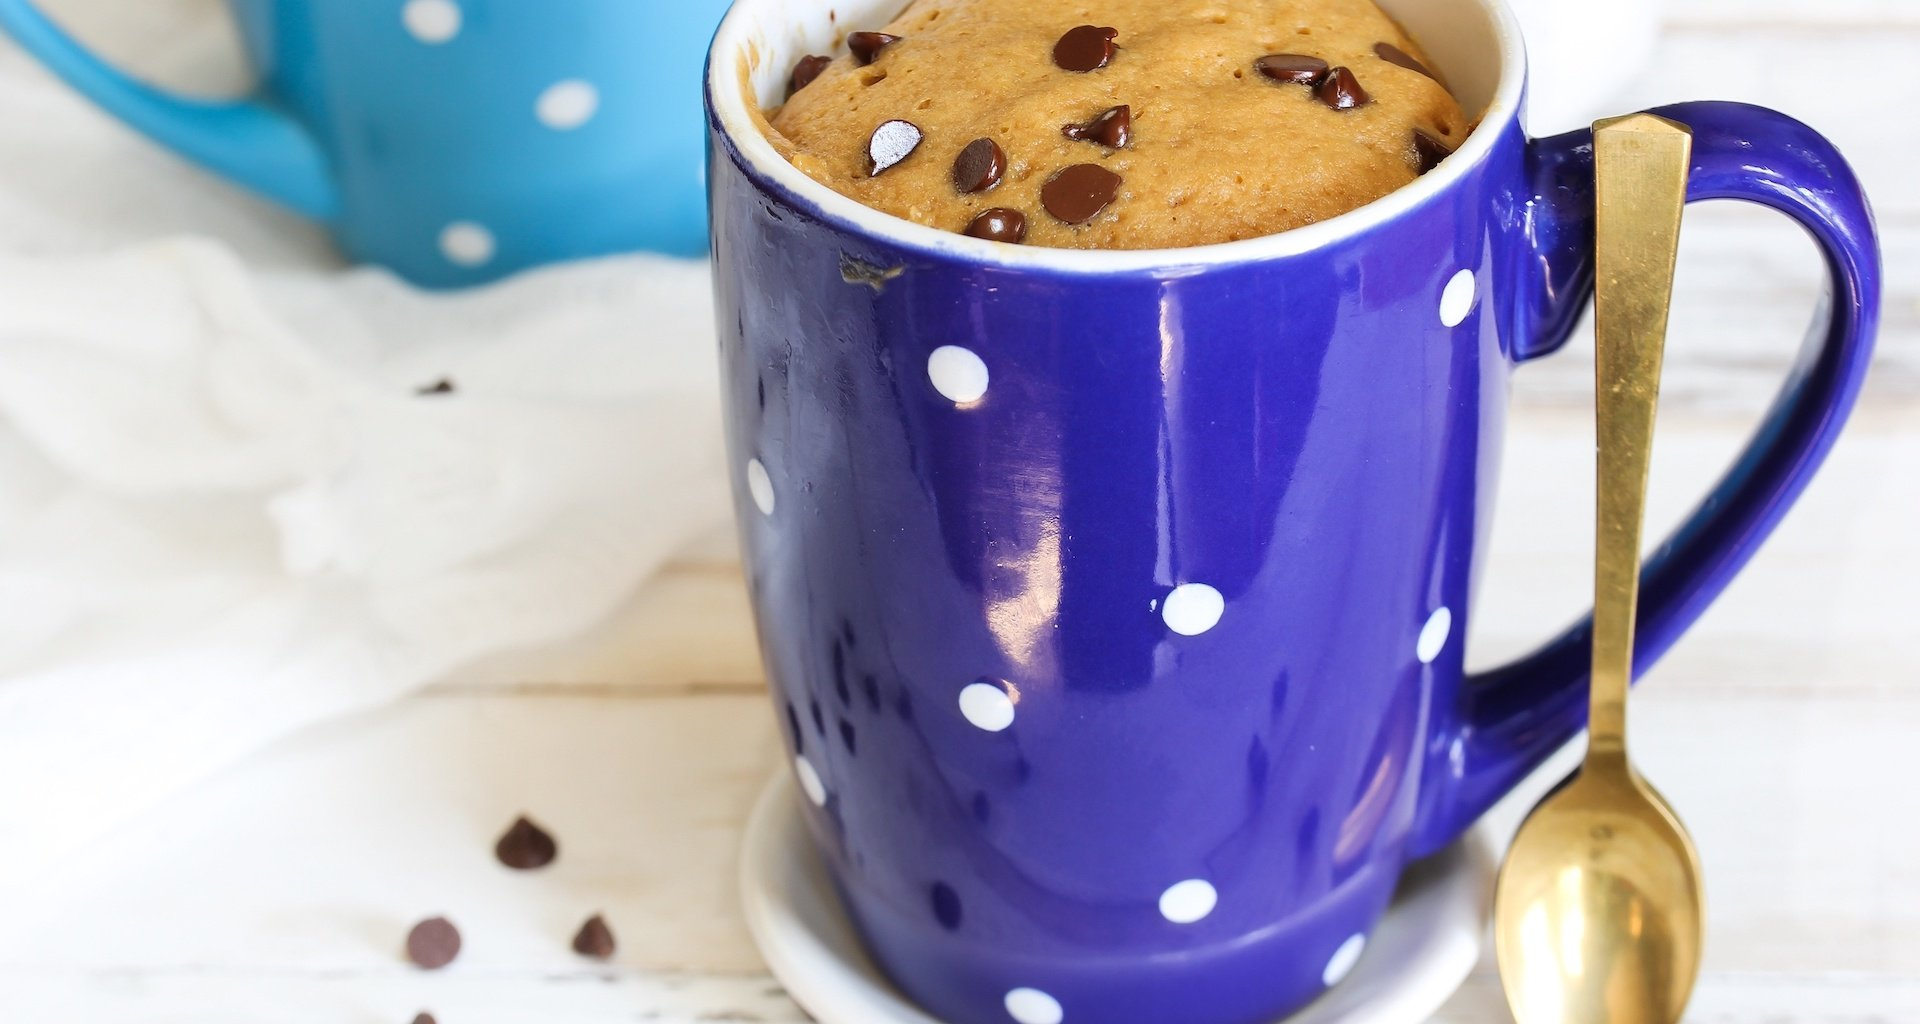 A picture of a blue mug with a microwaved cake inside